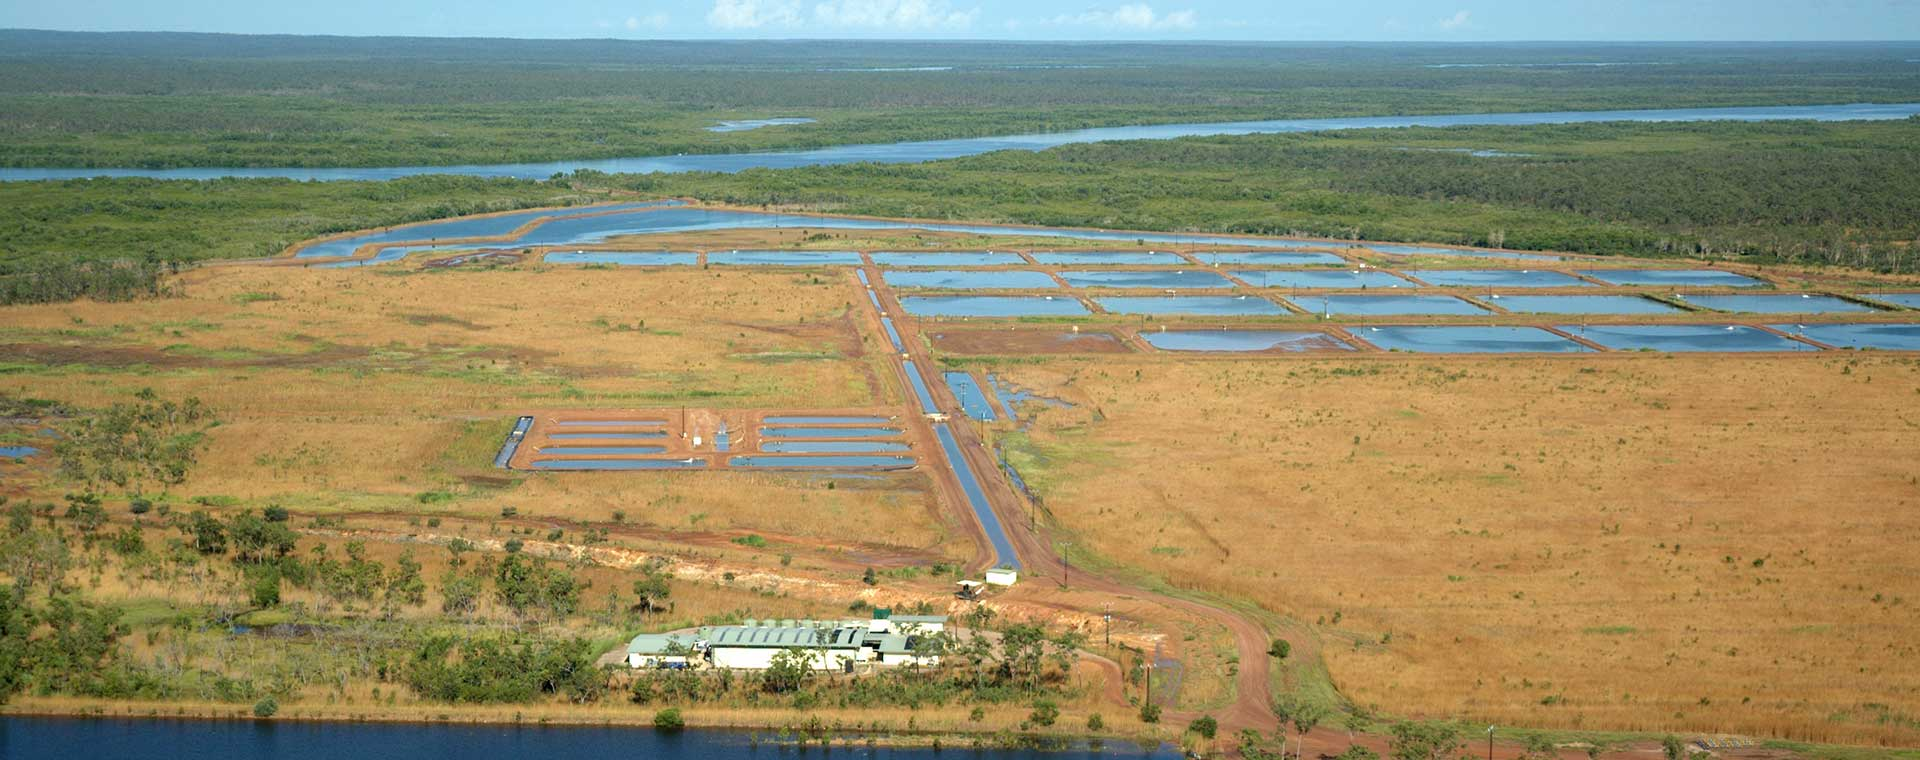 Aerial view of a fish farm